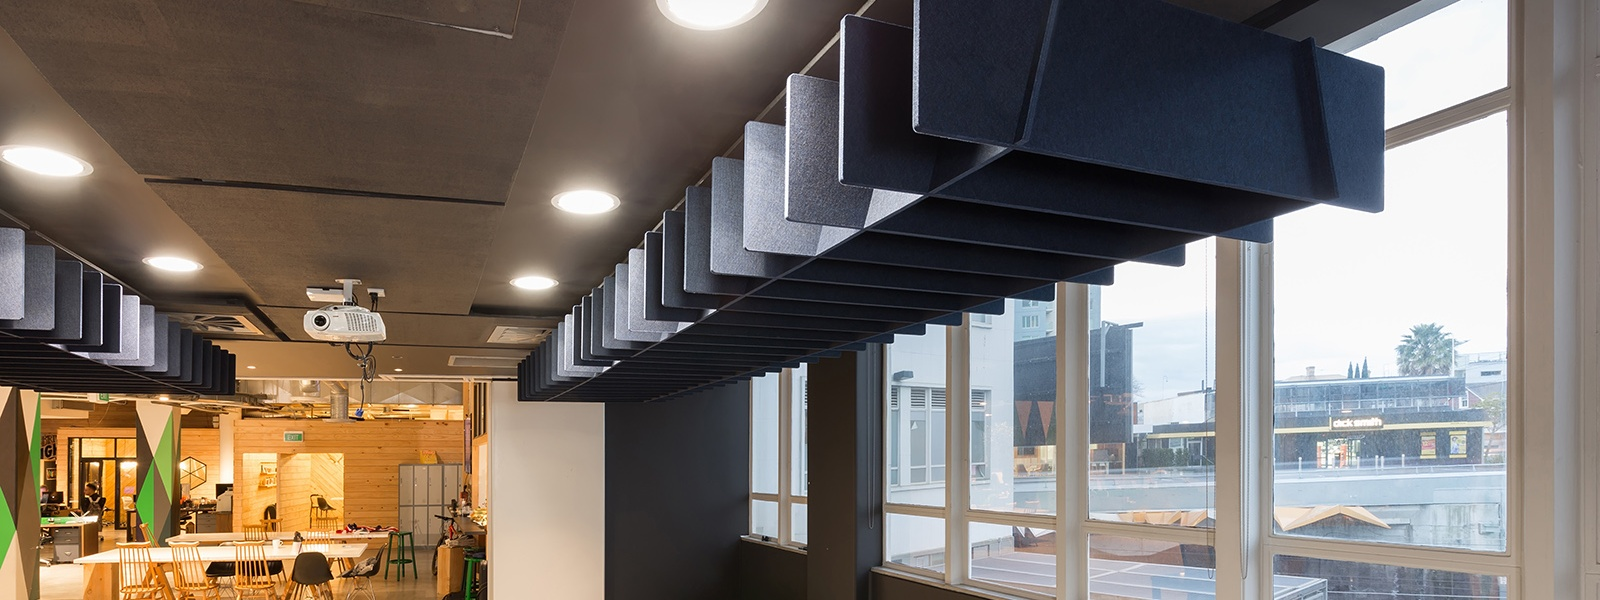 Acoustic Baffle Shapes